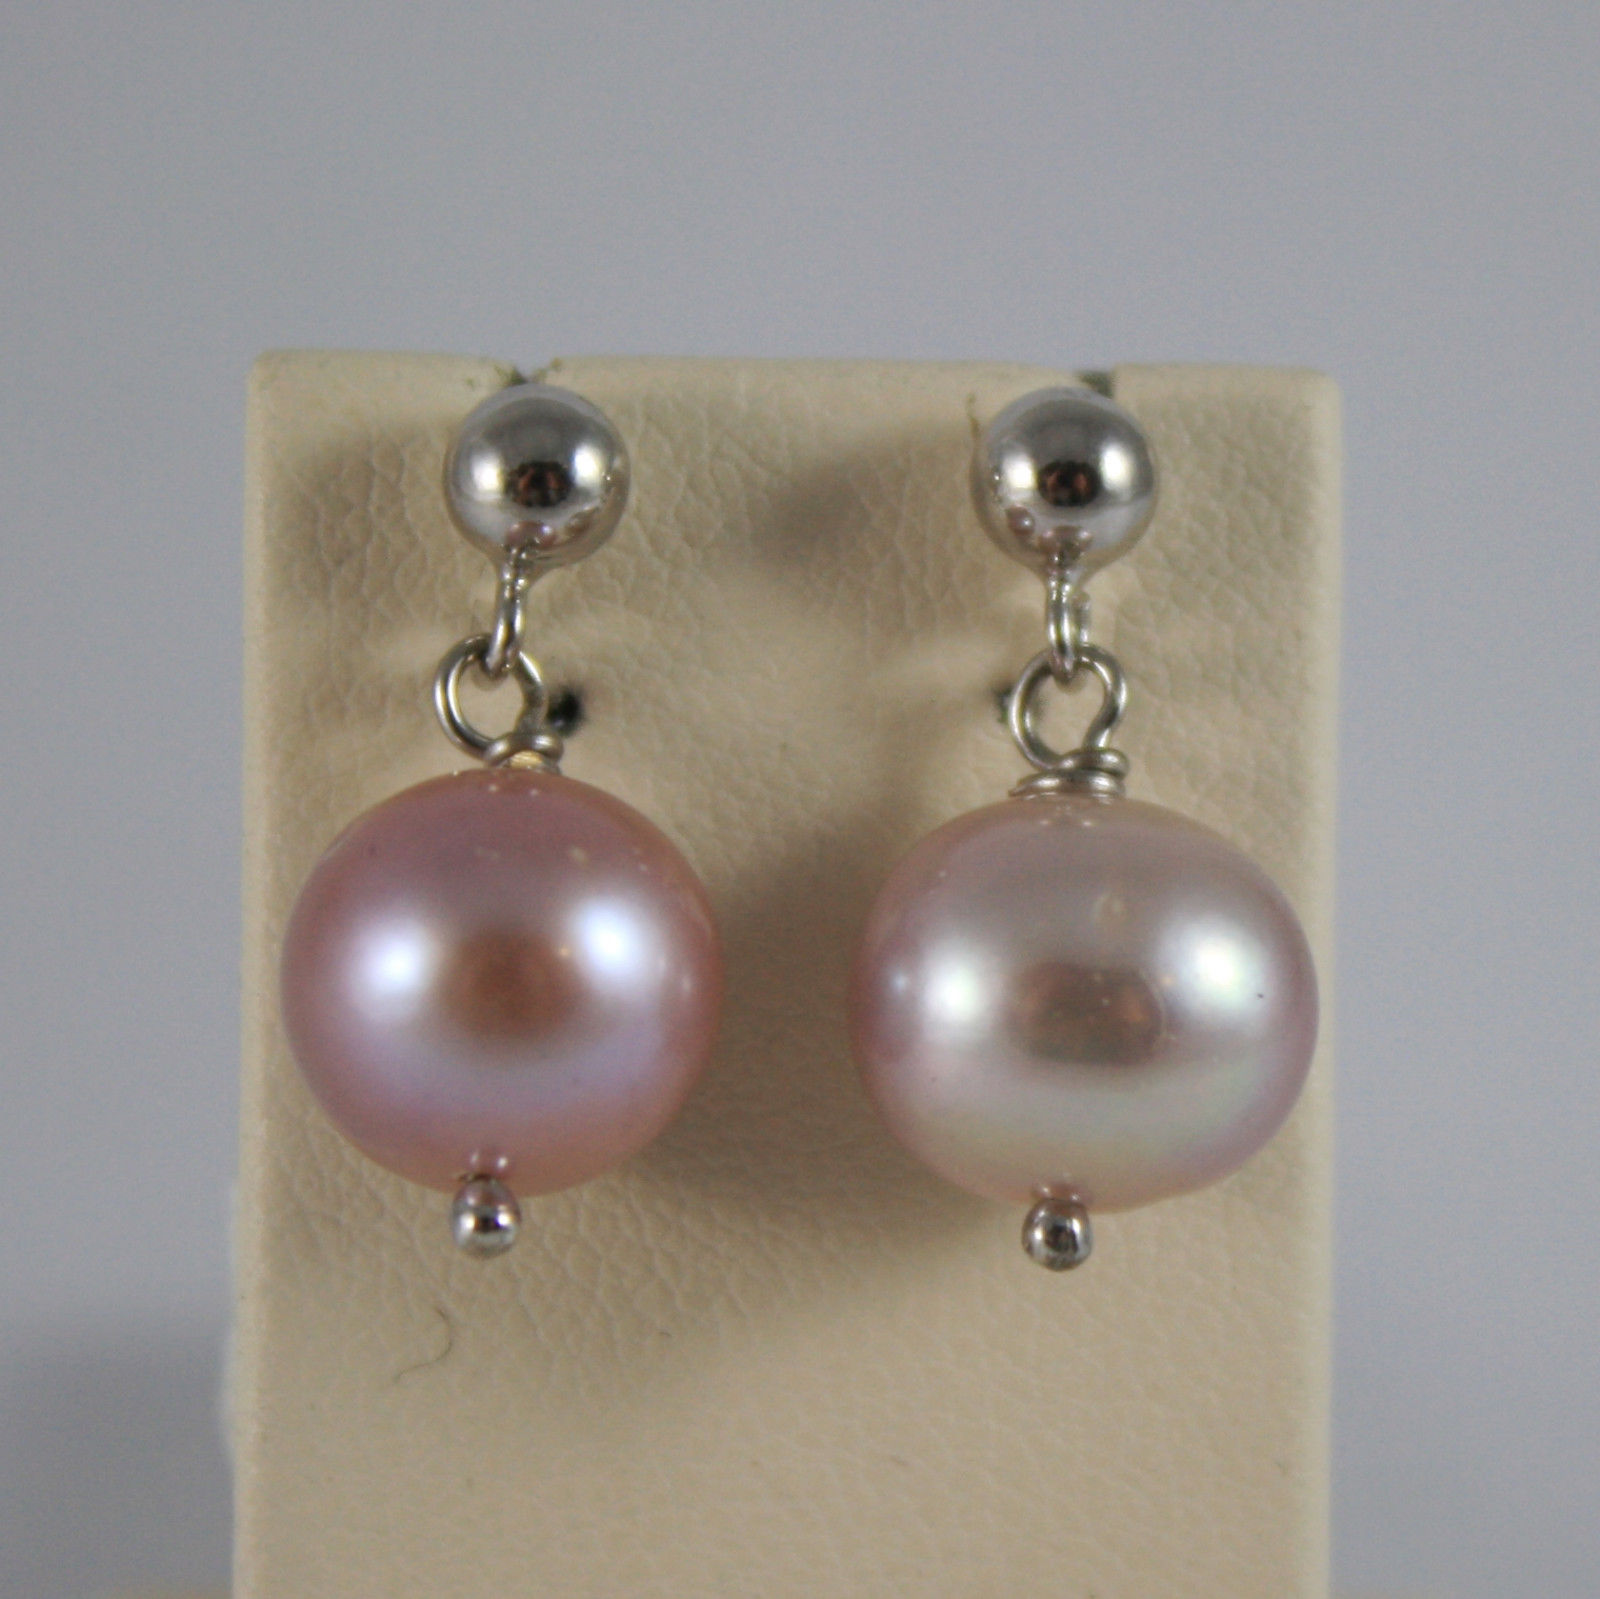 SOLID 18K WHITE GOLD EARRINGS, WITH FRESHWATER ROSE PEARLS, MADE IN ITALY